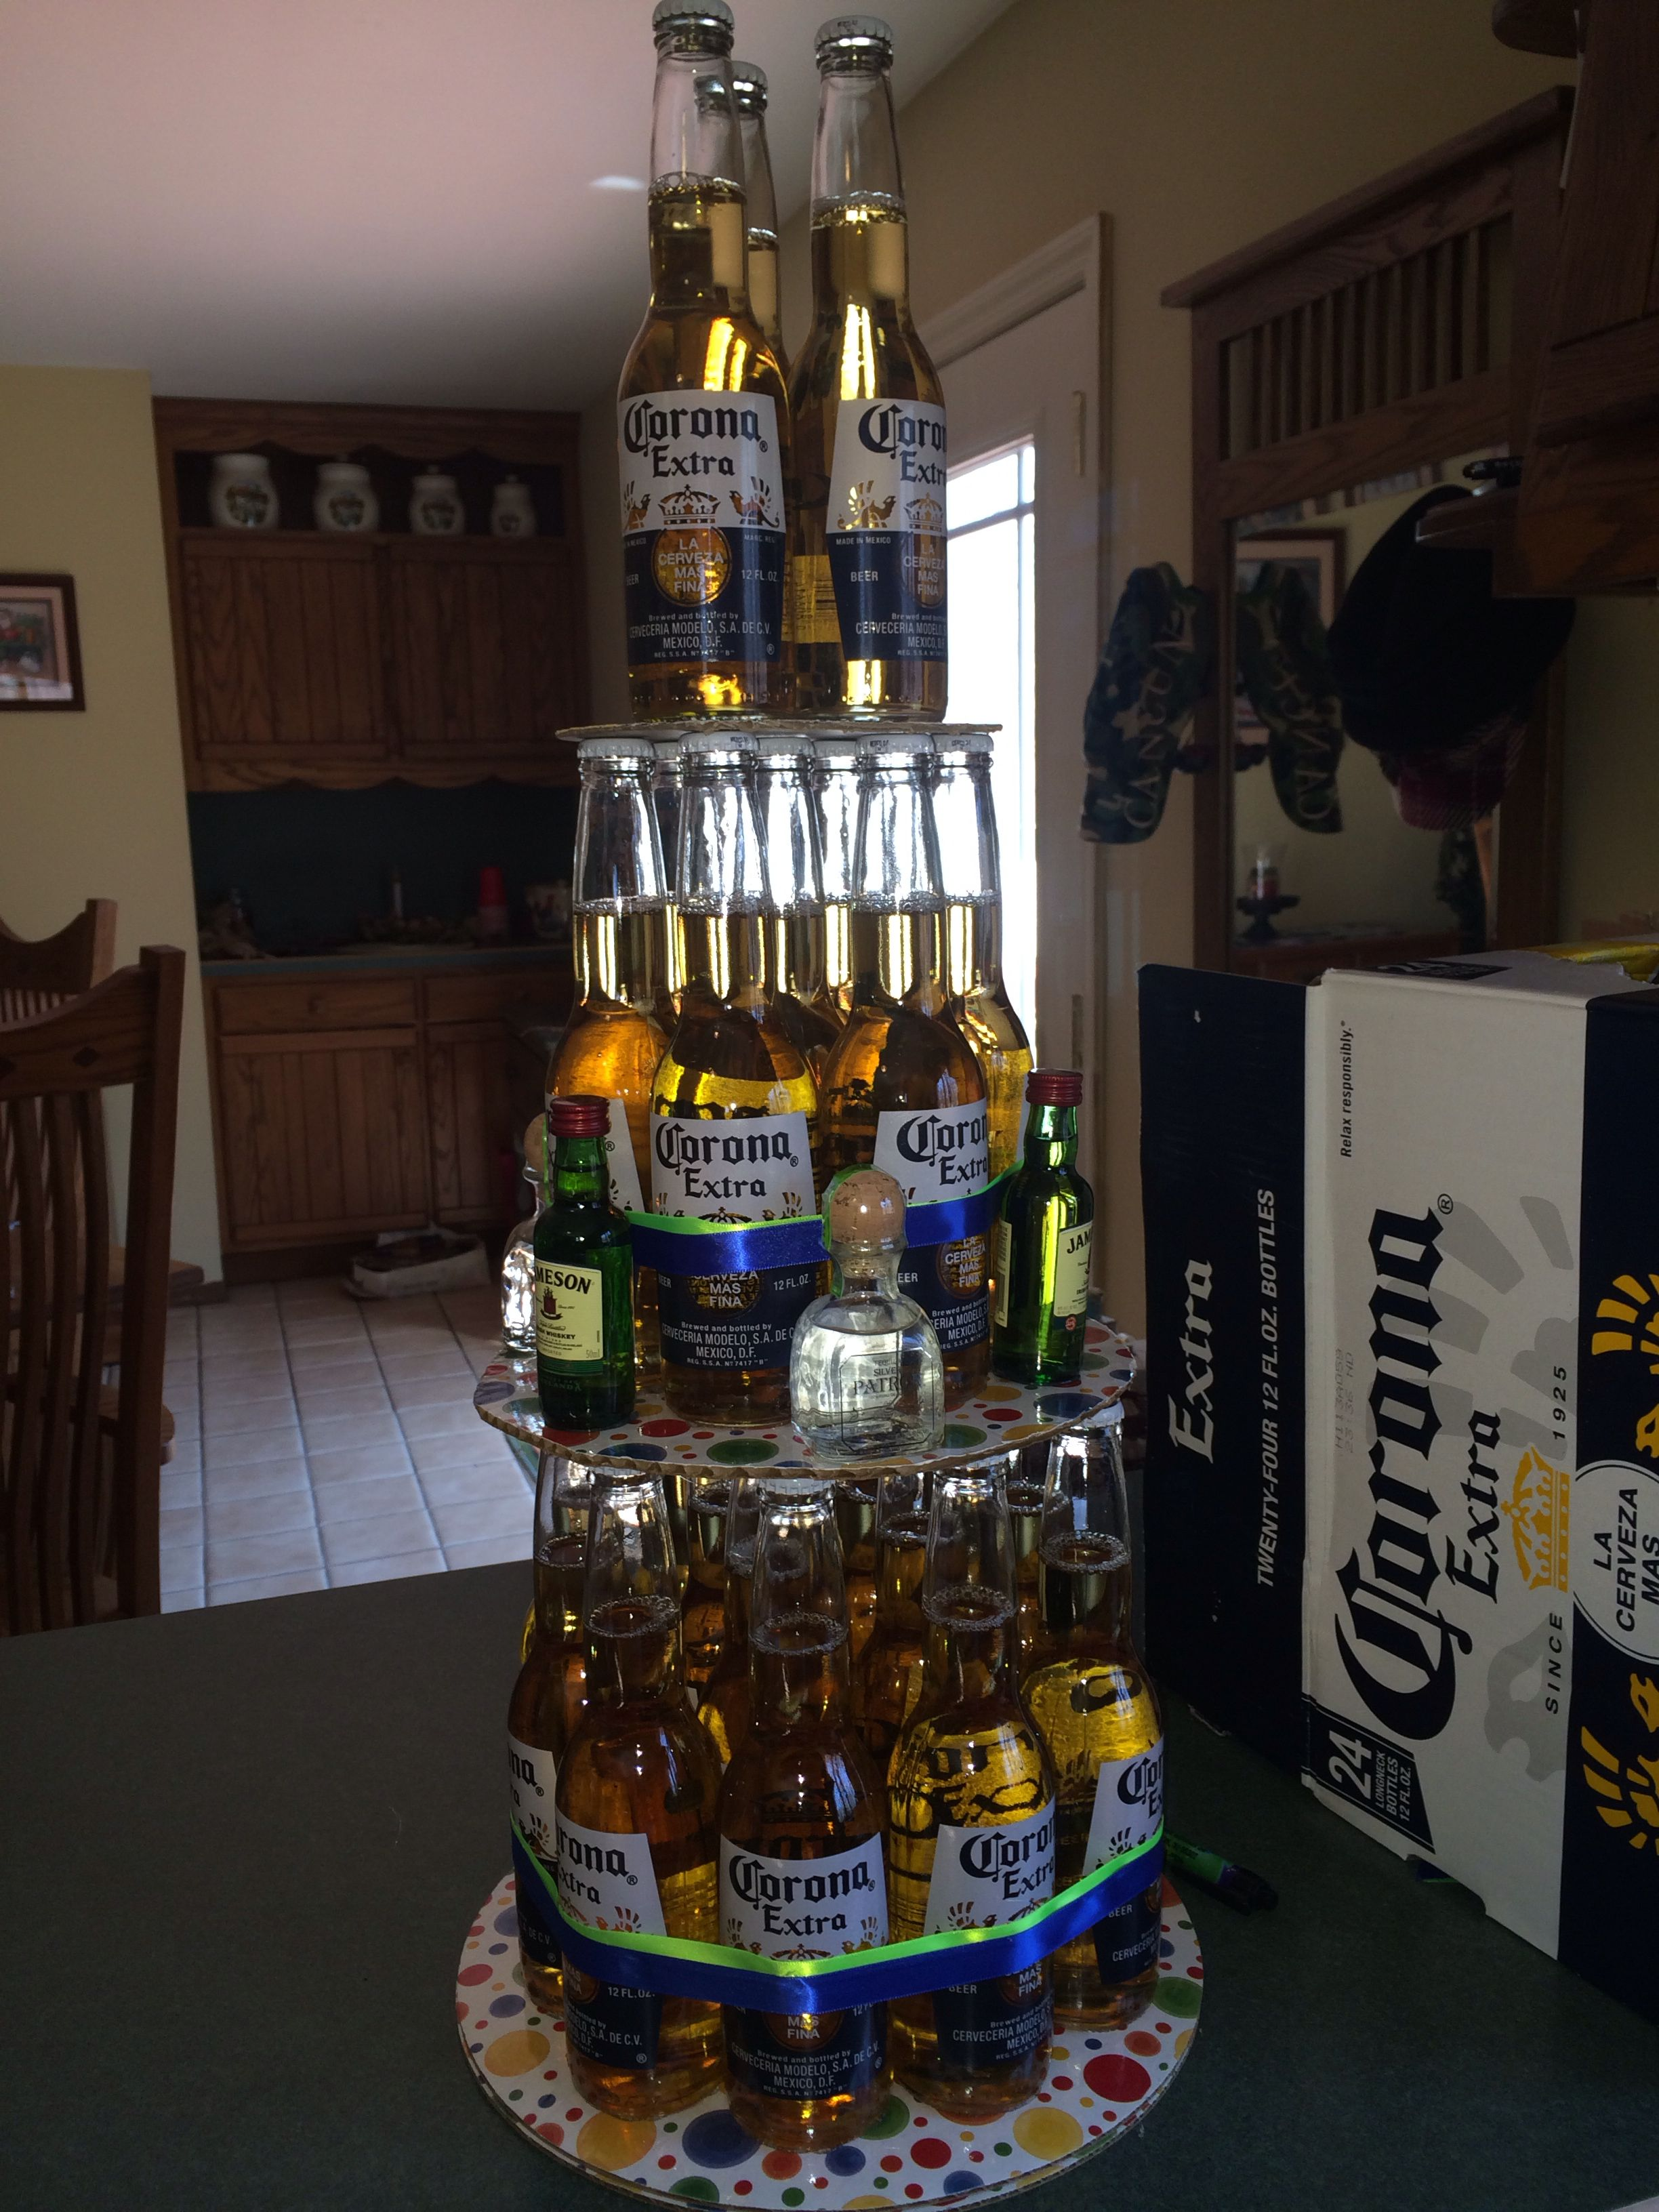 Diy Beer Bottle Cake 24 Bottled Beers 4 Airplane Shots 2